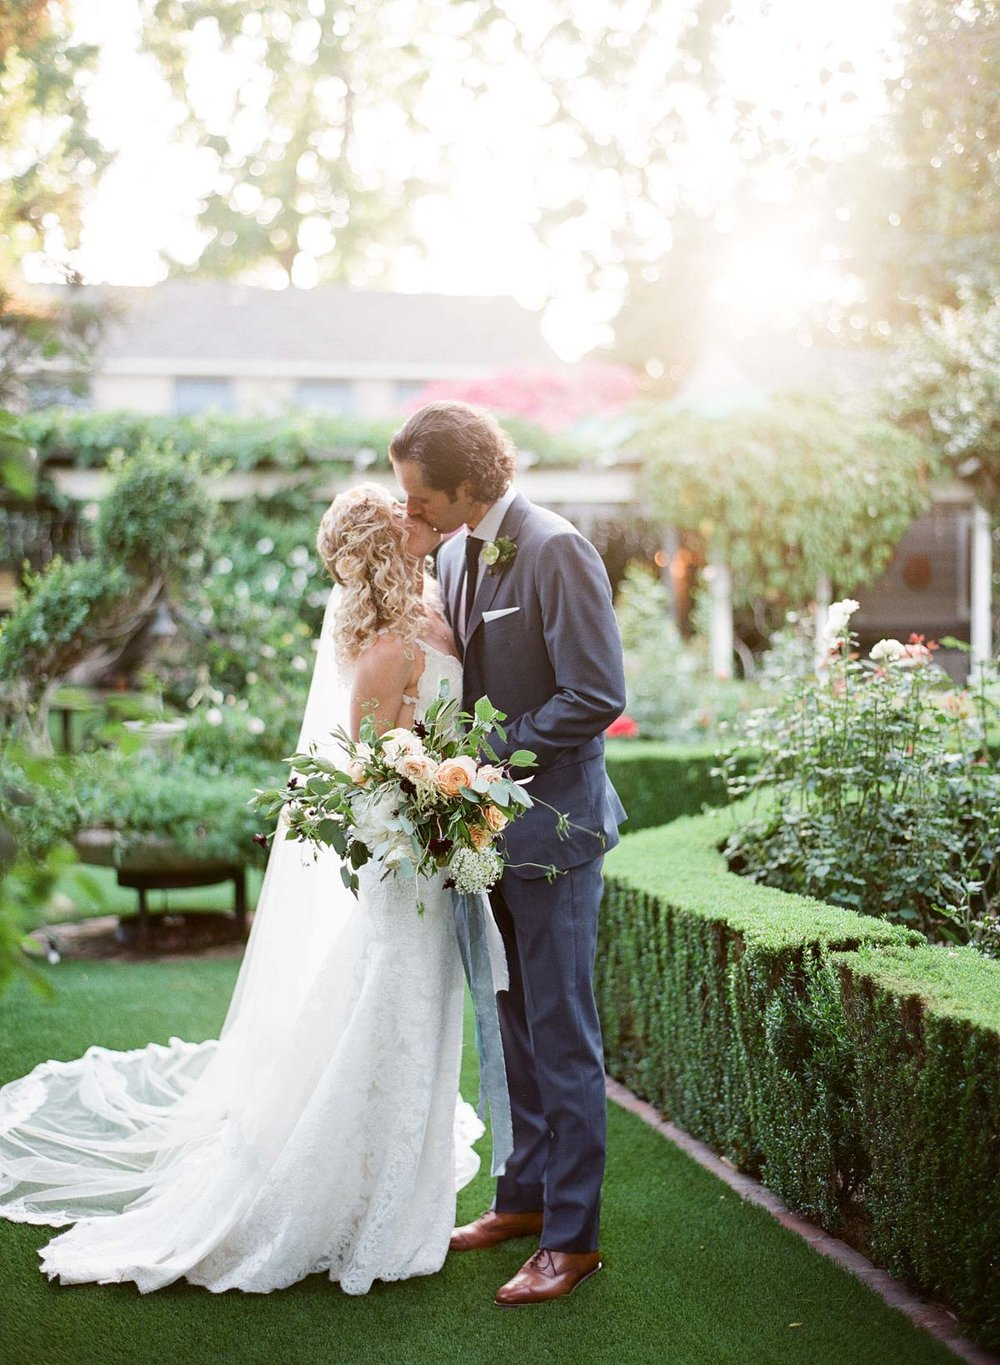 Lauren_Travis_Backyard_California_Wedding (c) Greg_Finck-080.jpg